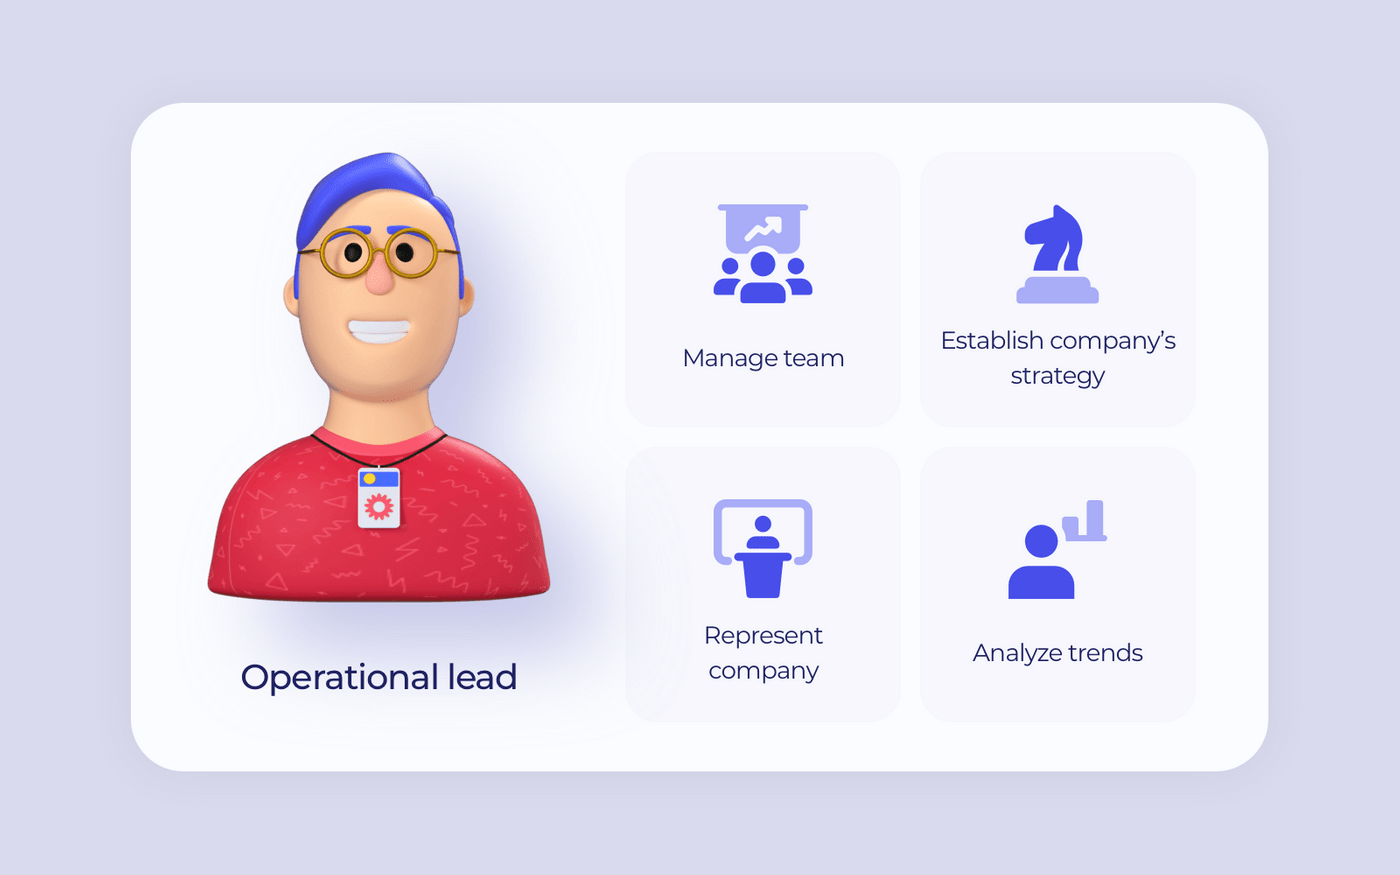 Hire a CTO: Operational lead